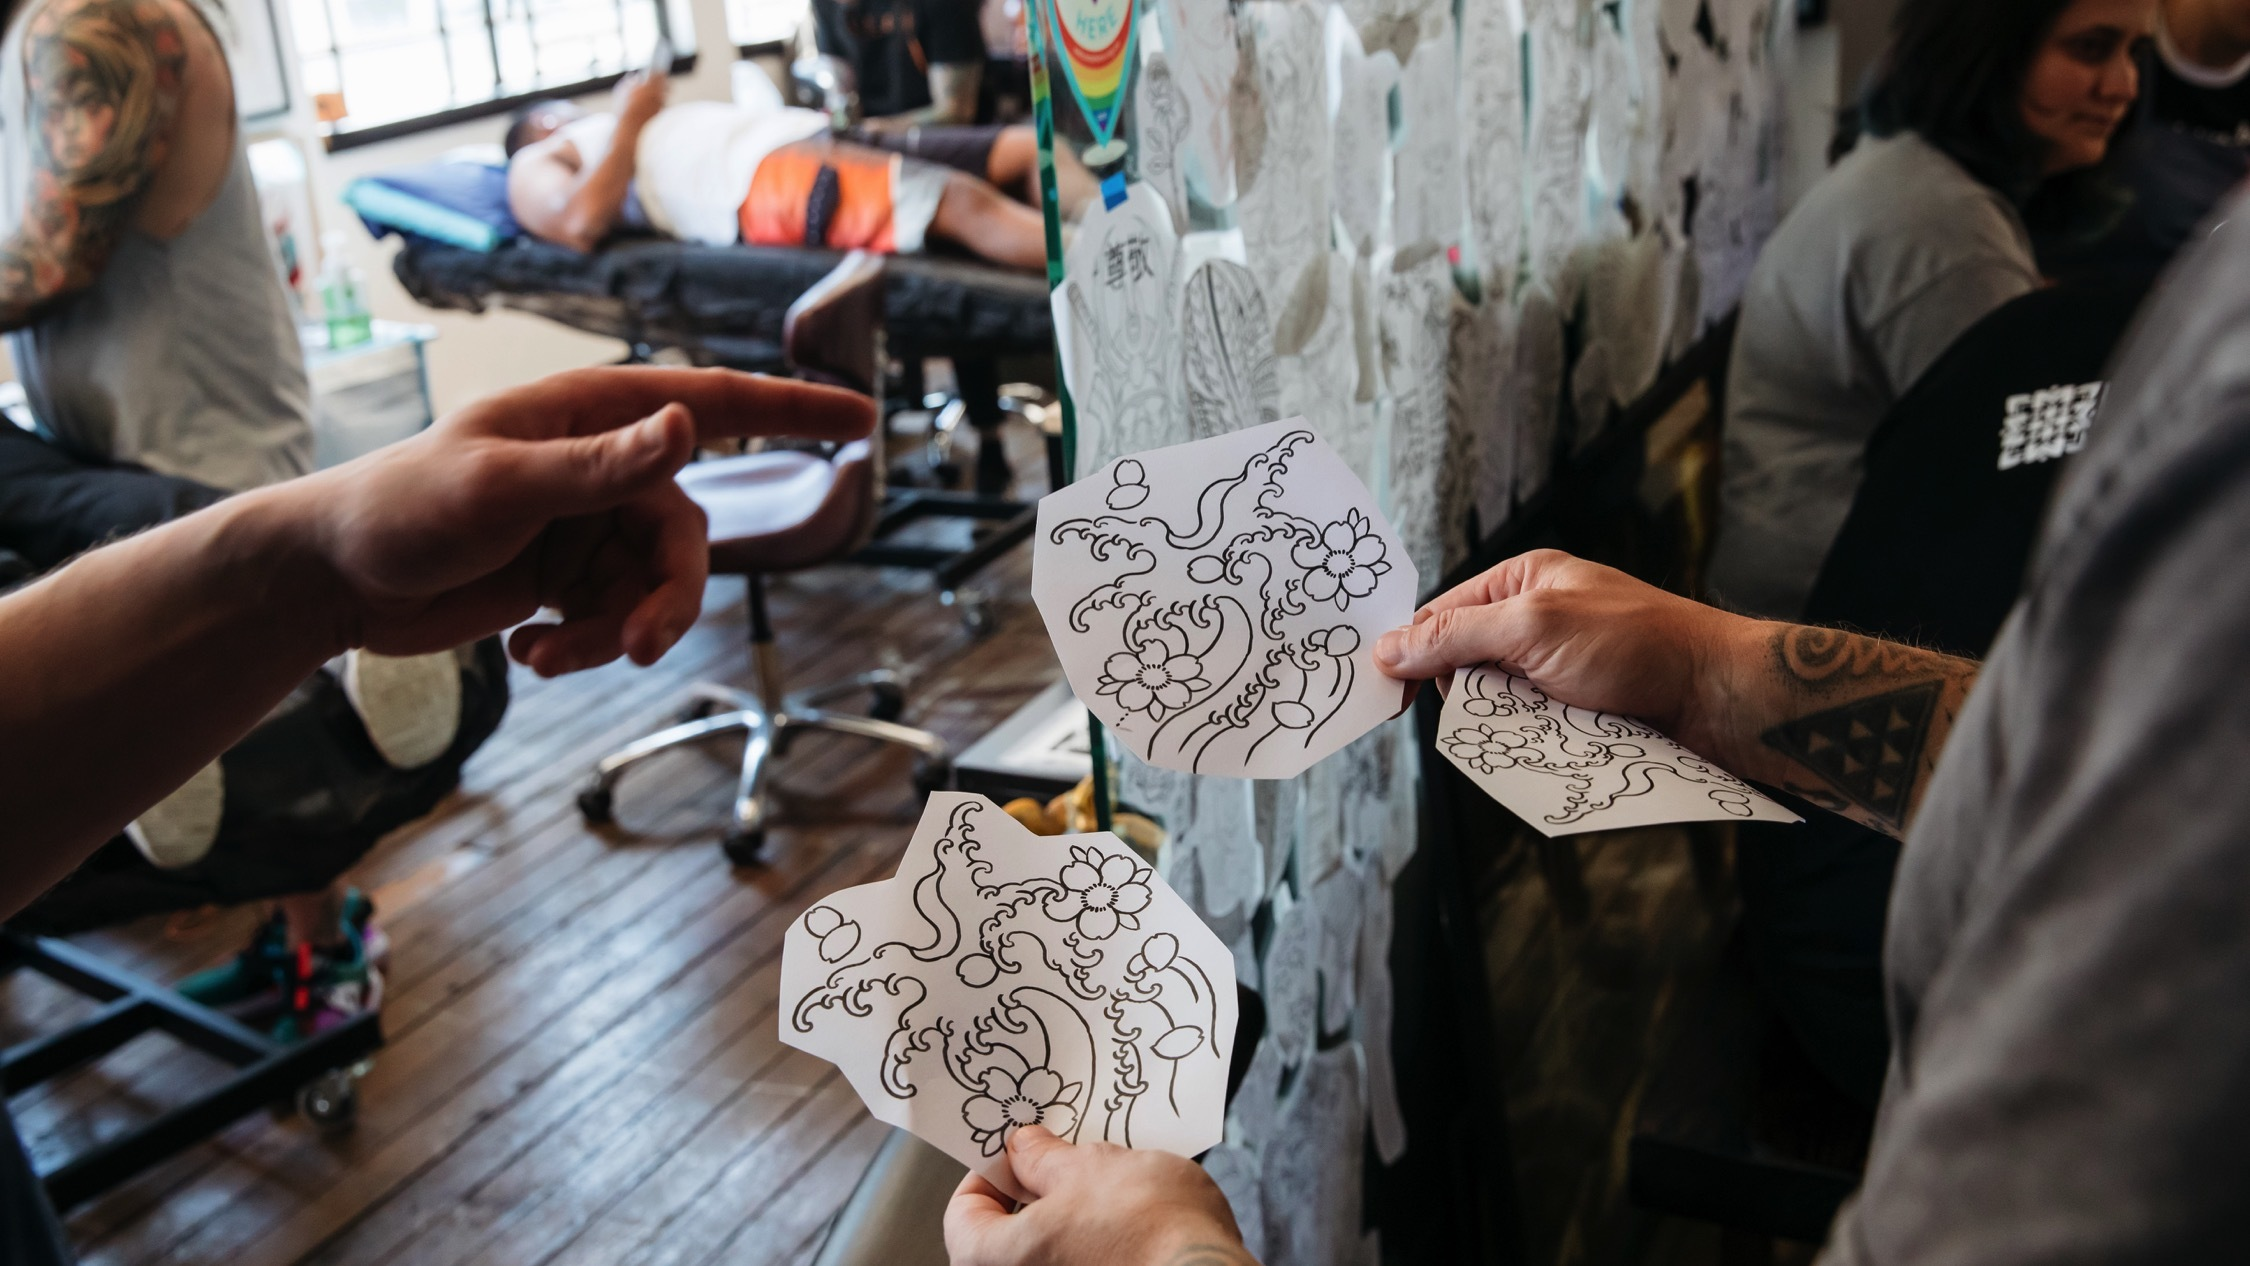 You can ink now, pay later with this new Afterpay-style credit service for tattoos